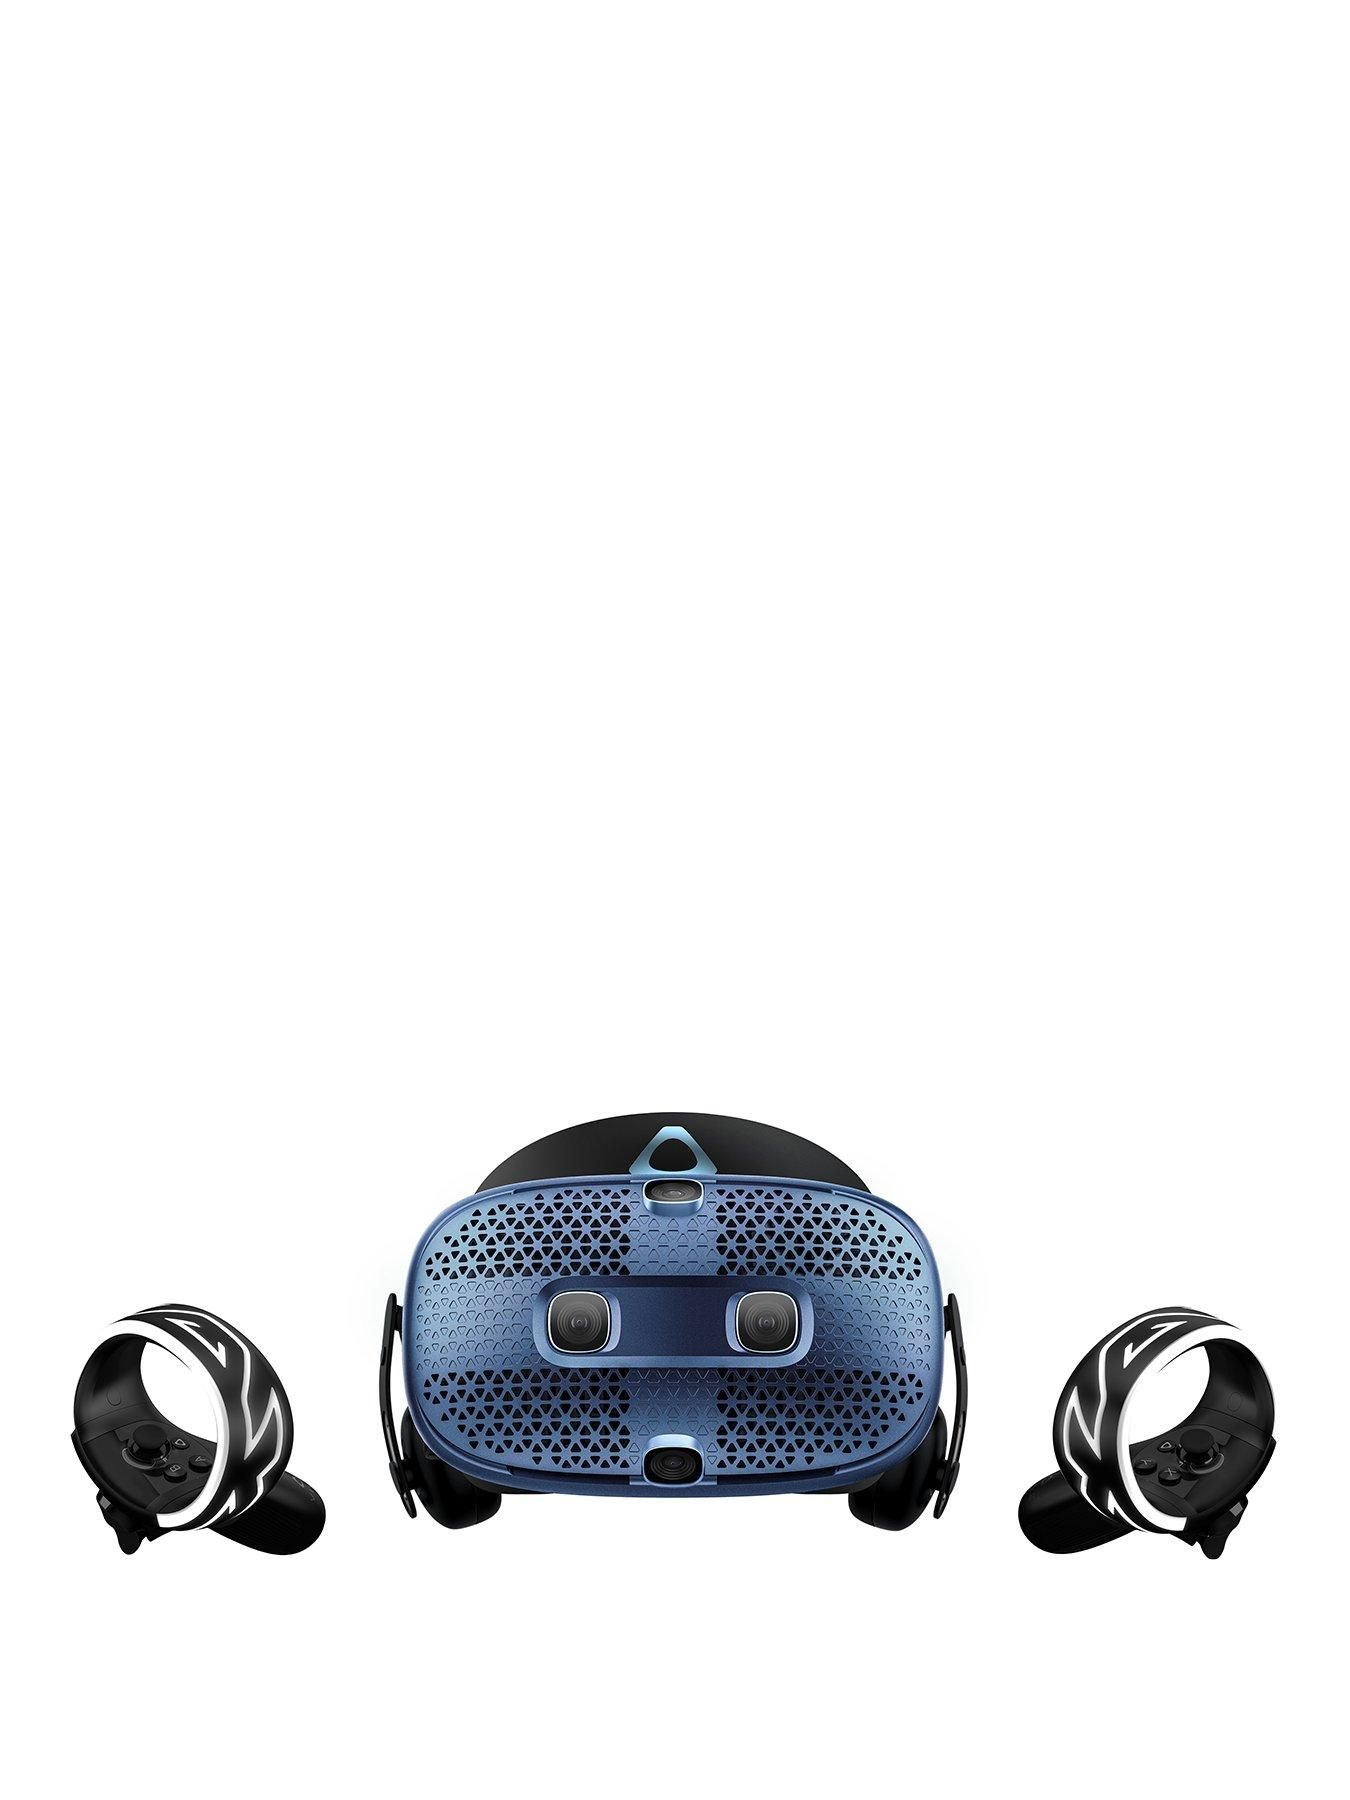 Htc Vive Cosmos In Blue In 2020 Htc Vive Htc Vr Experience